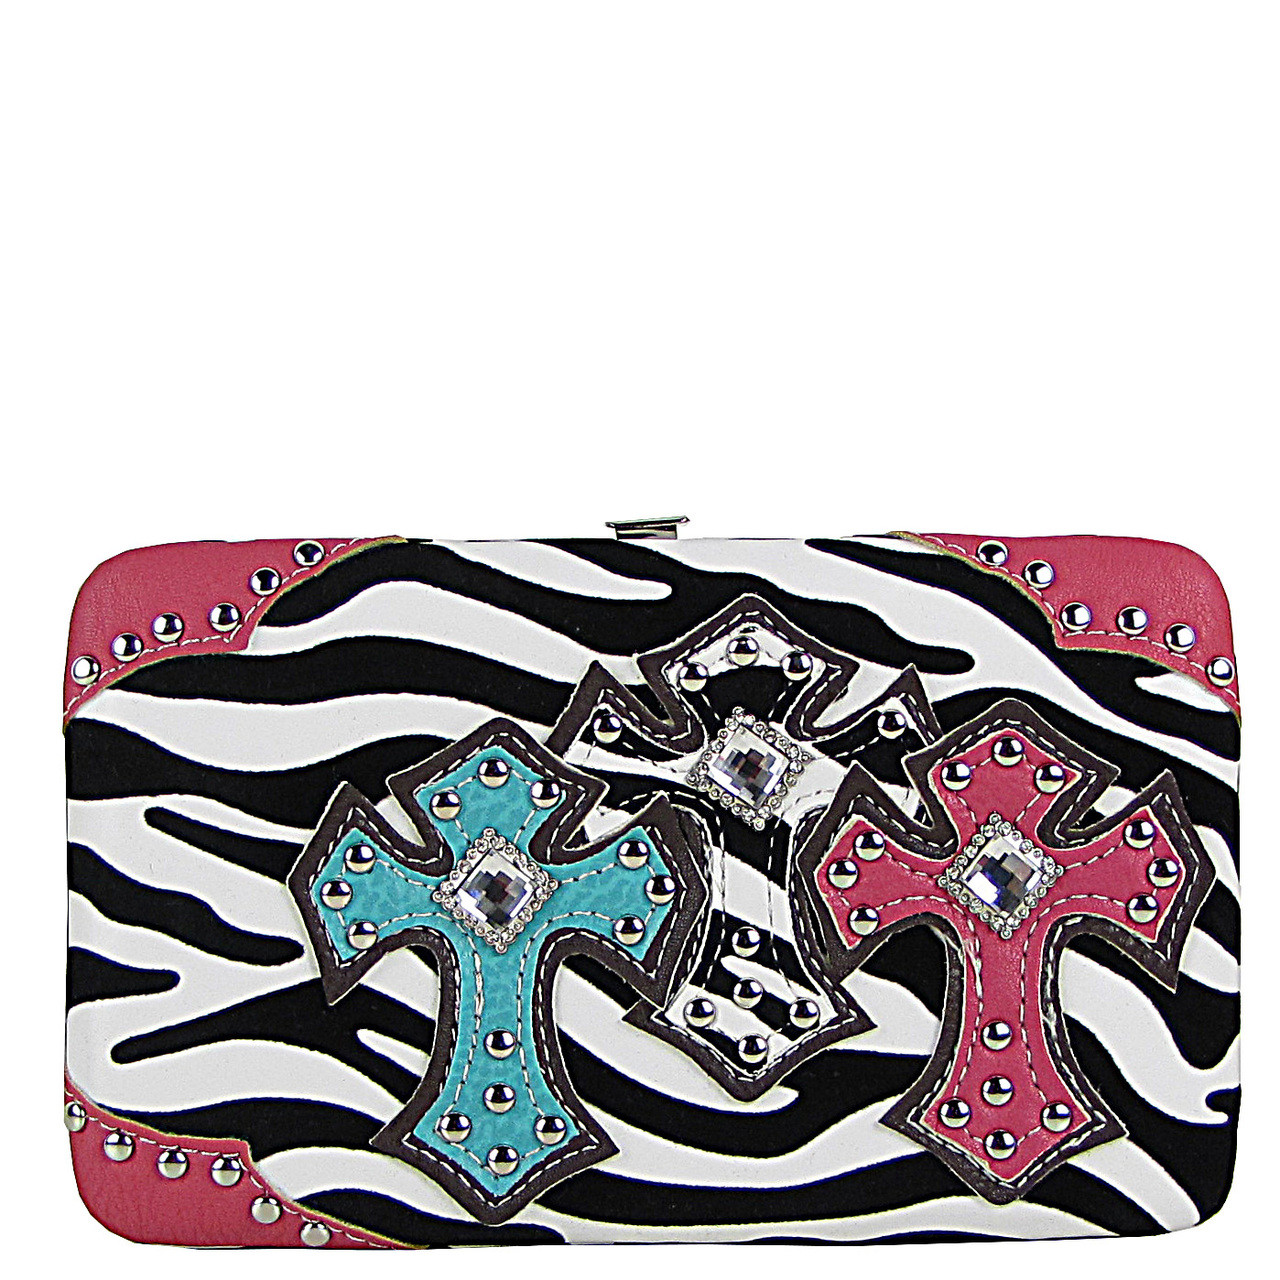 HOT PINK ZEBRA STONE STUDDED CROSS LOOK FLAT WALLET FW2-04102HPK